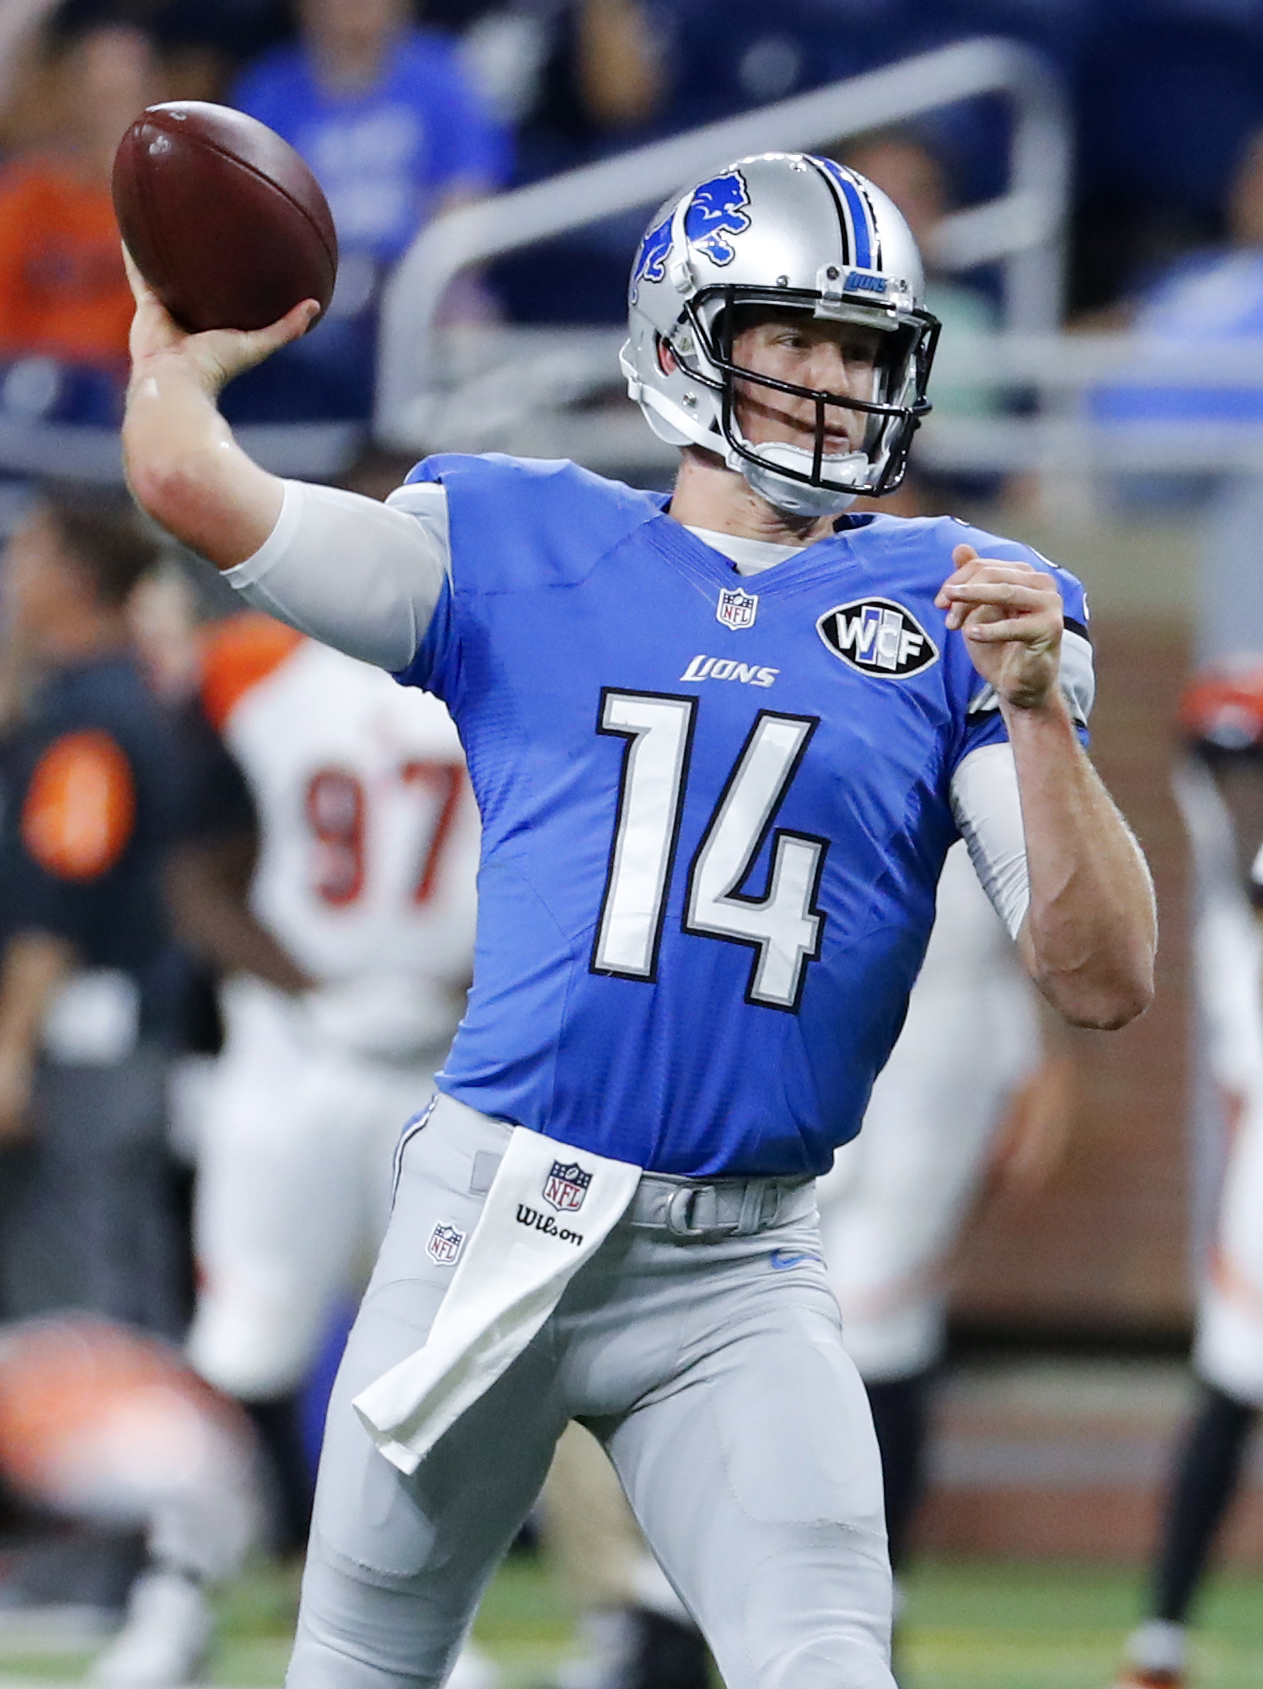 FILE - In this Aug. 18, 2016, file photo, Detroit Lions quarterback Jake Rudock throws against the Cincinnati Bengals in the second half of an NFL preseason football game in Detroit. The Lions are counting on Matthew Stafford taking every snap this season